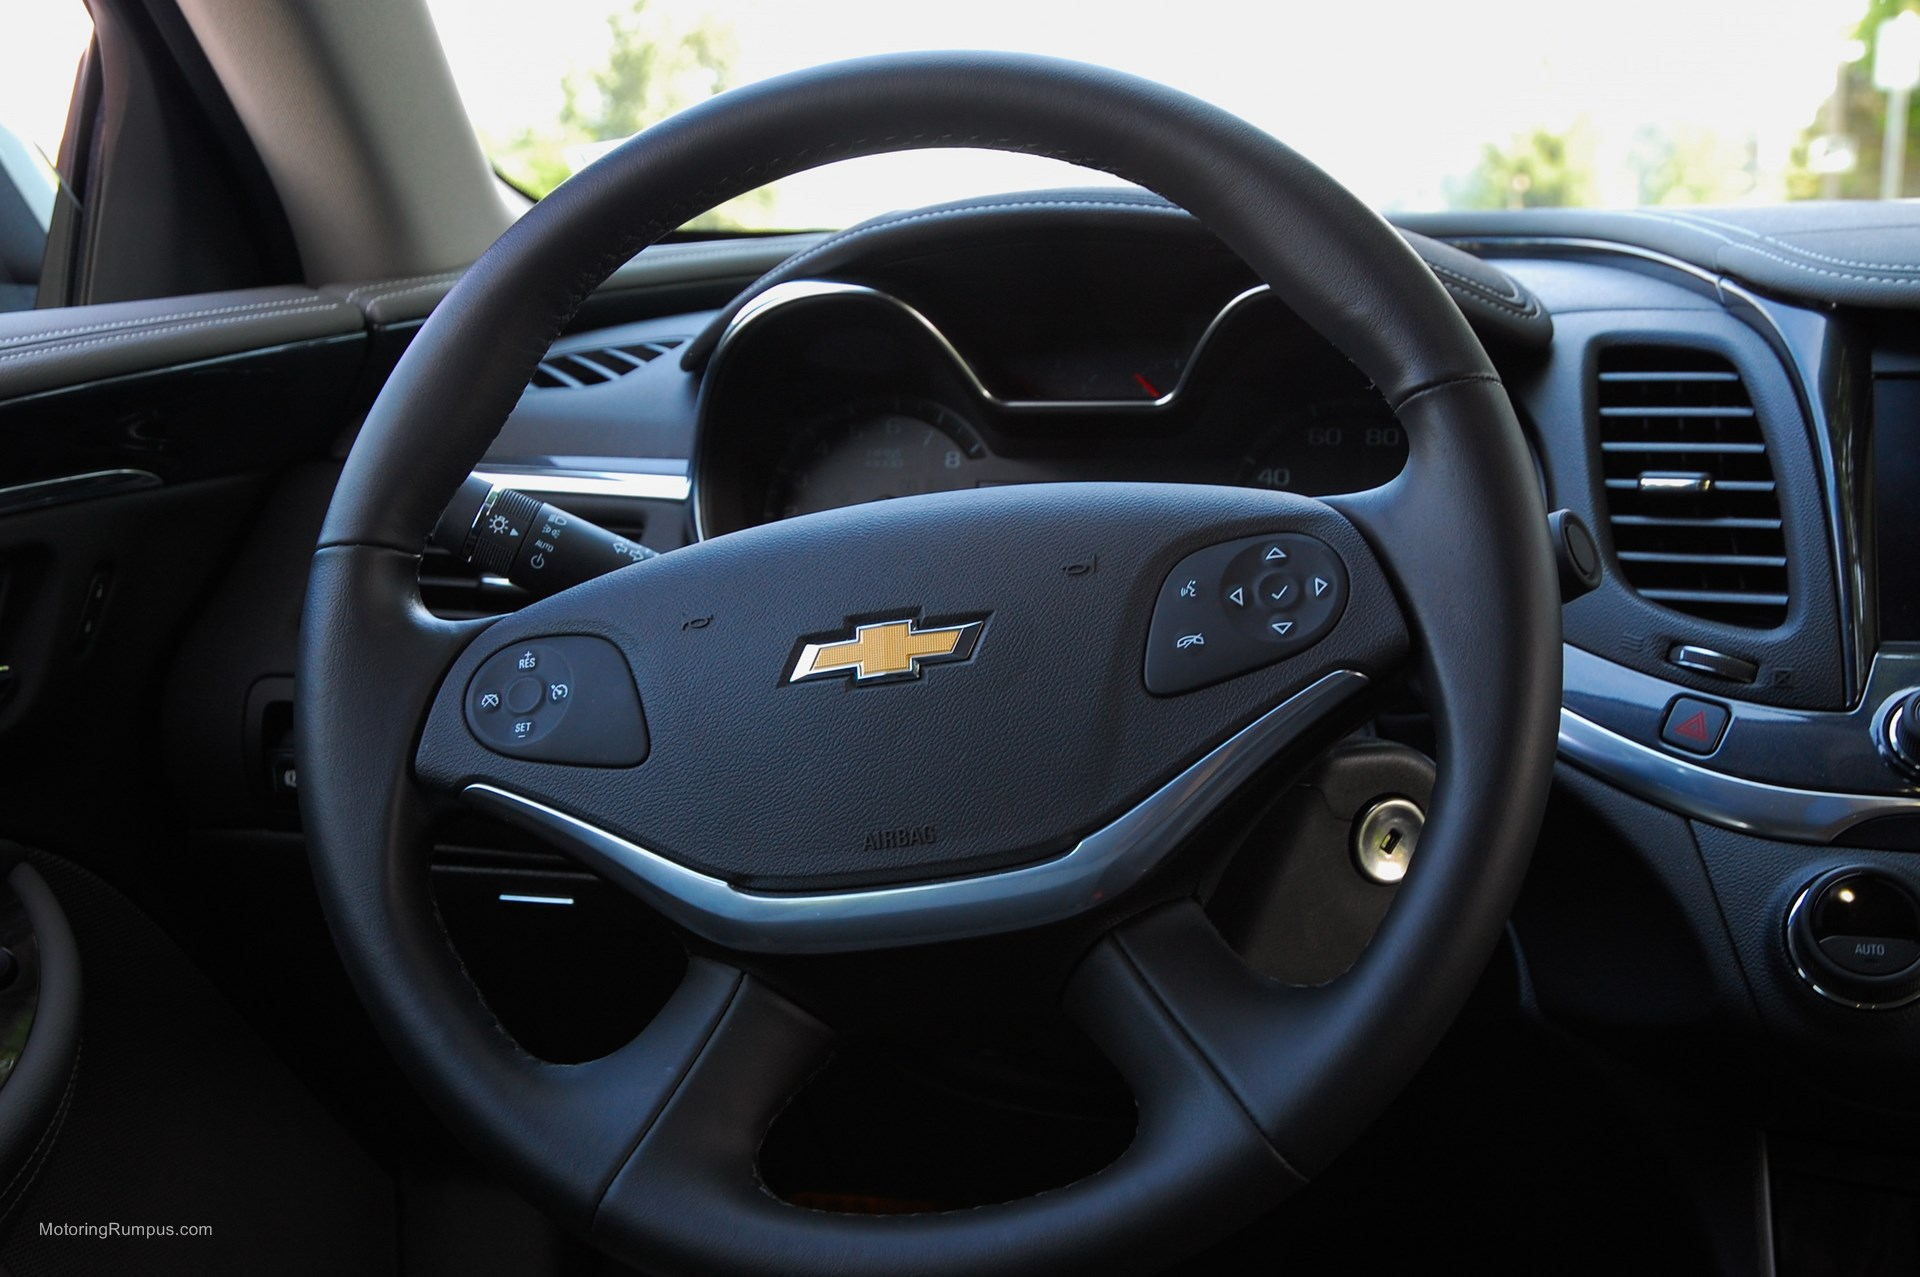 2014 Chevy Impala Review Motoring Rumpus